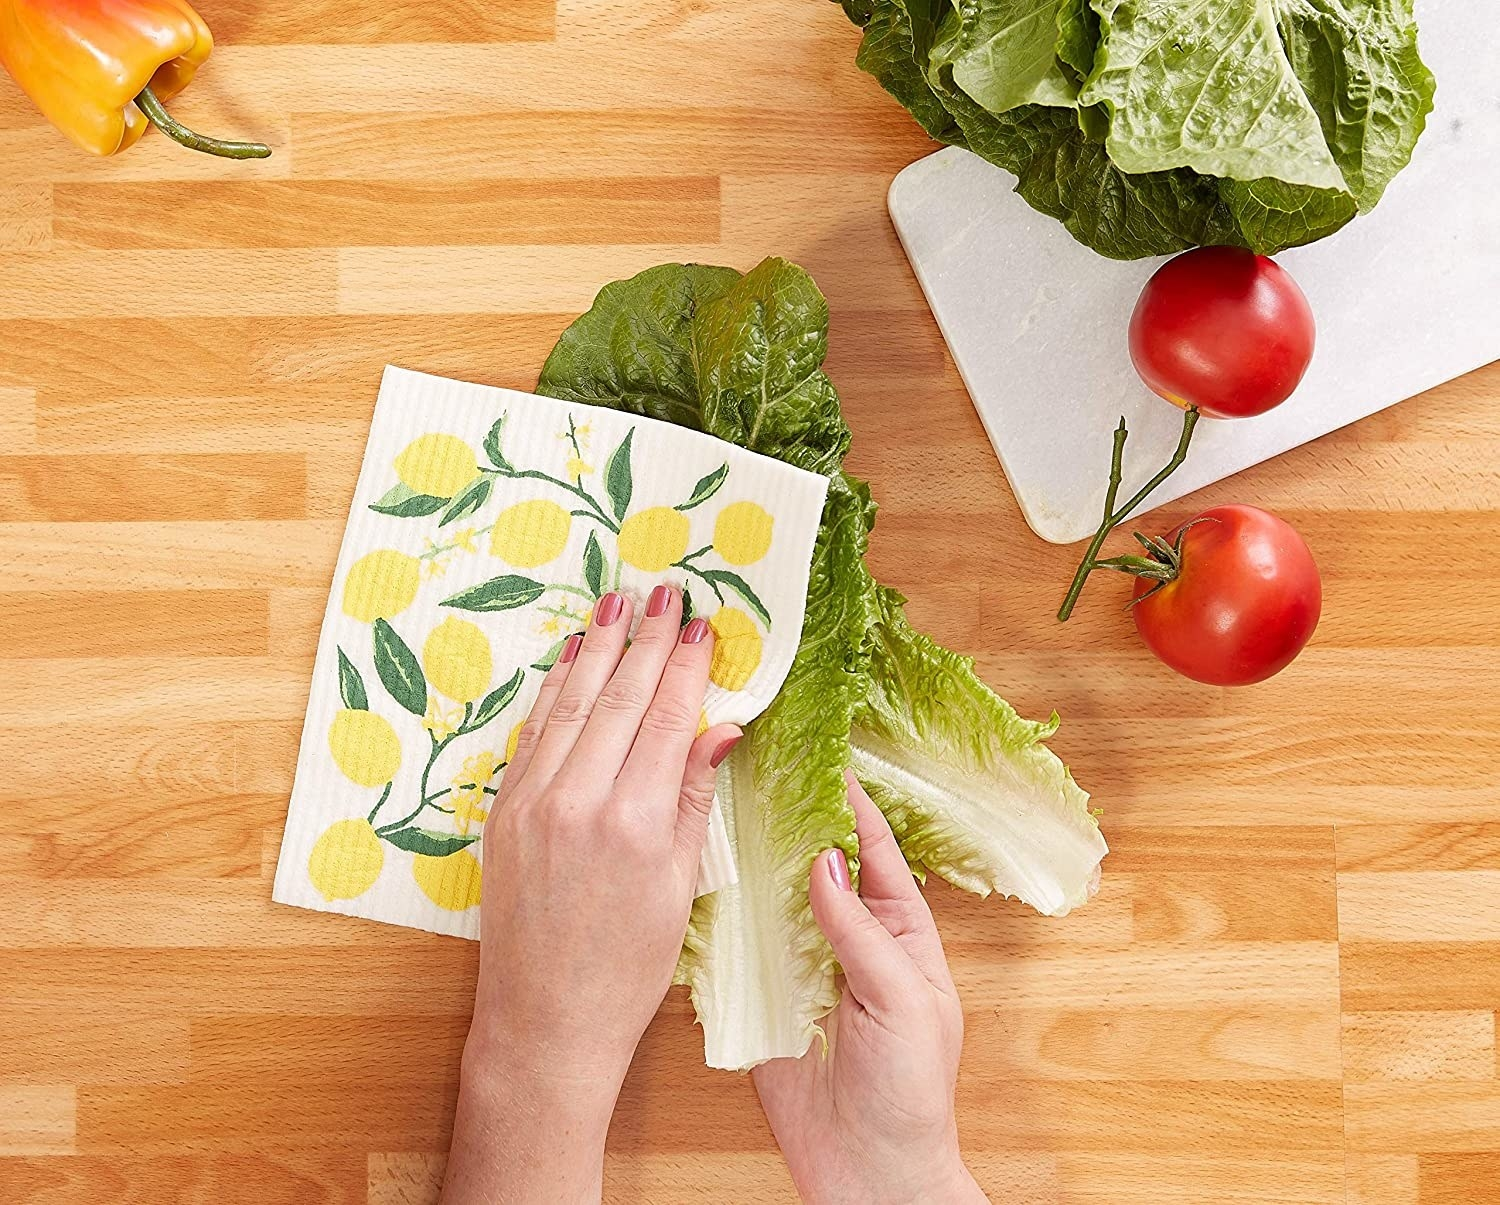 Close up of a model's hands using the dishcloth with a lemon illustration to clean some lettuce.